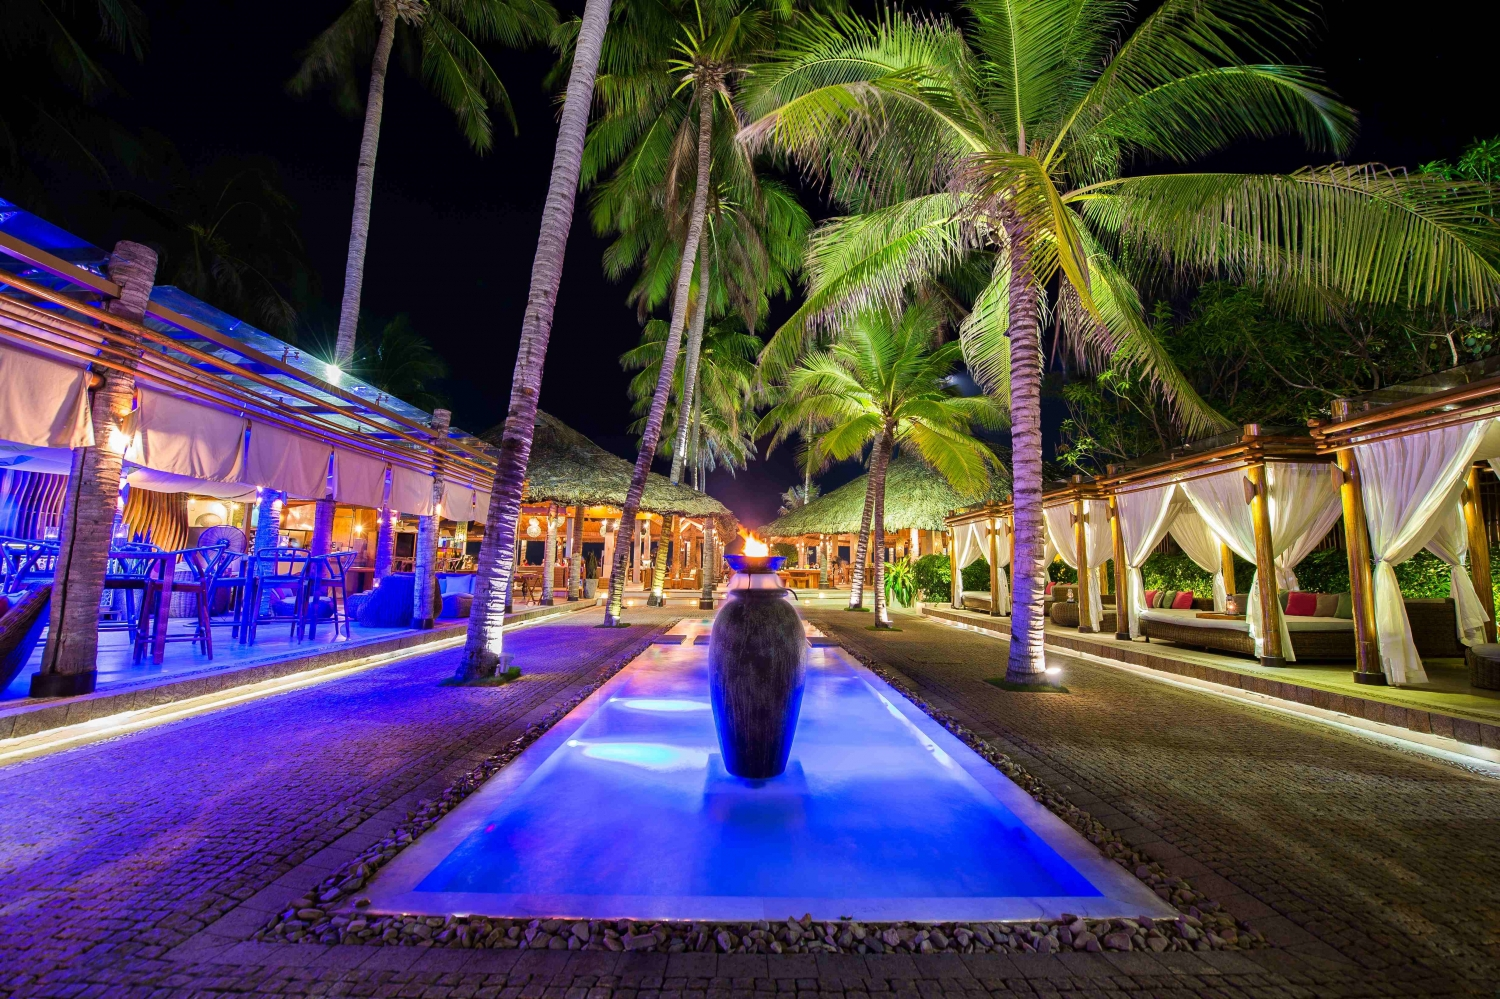 Nha Trang has plenty of watering holes to match all interests andexpectations